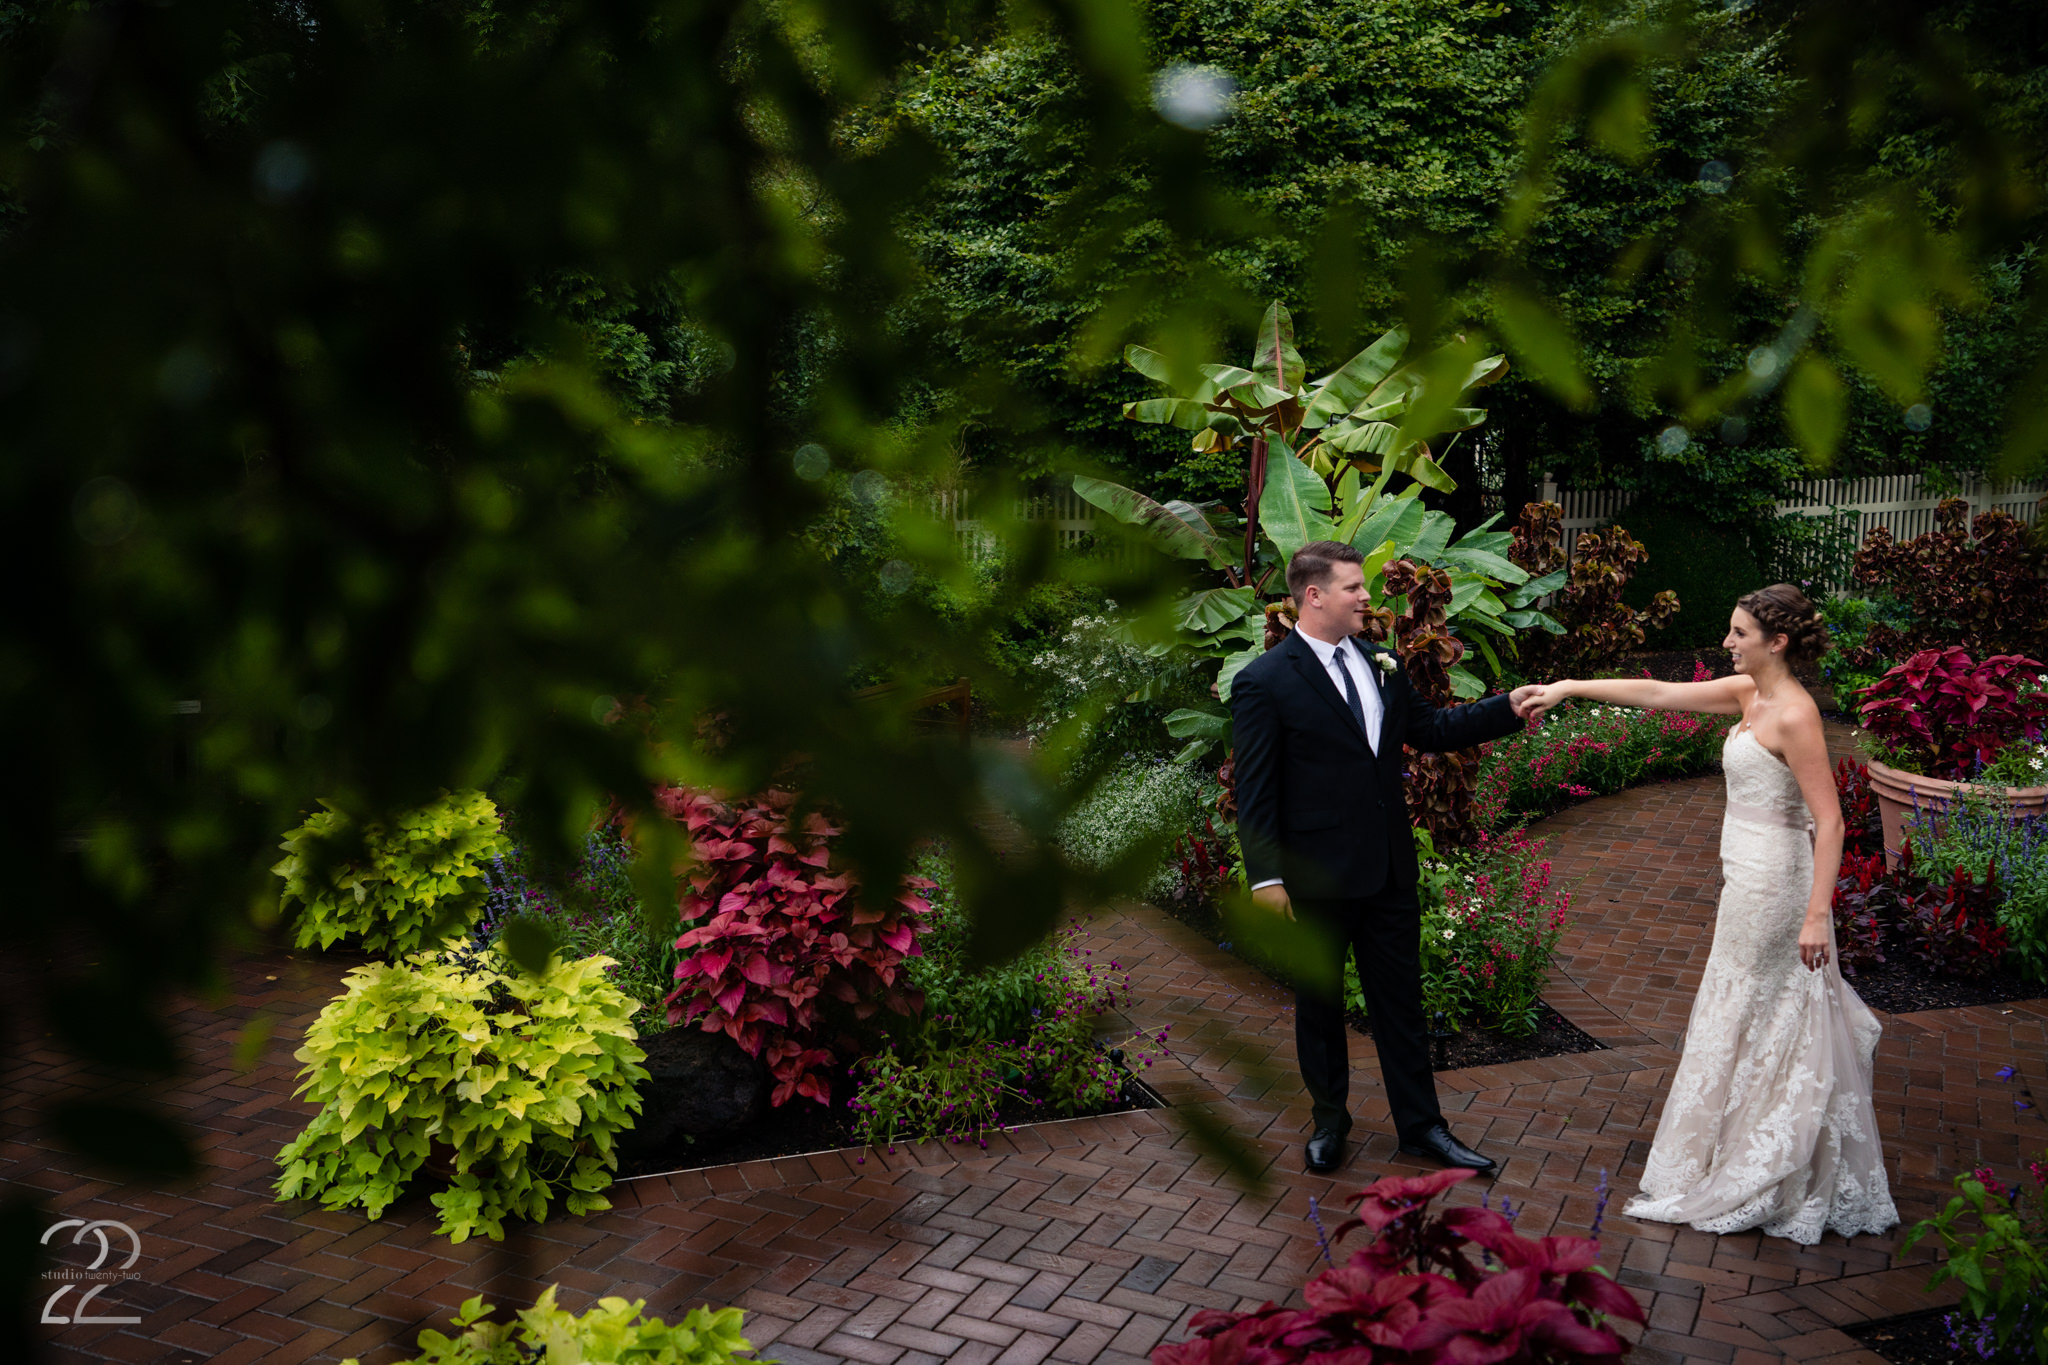 Wegerzyn Garden is another stunning Dayton location for wedding photographs. The mixture of colour and greenery, as well as the perfectly manicured grounds and picturesque walkways allowed for some fantastic images at Taylor and Kirsten's wedding.